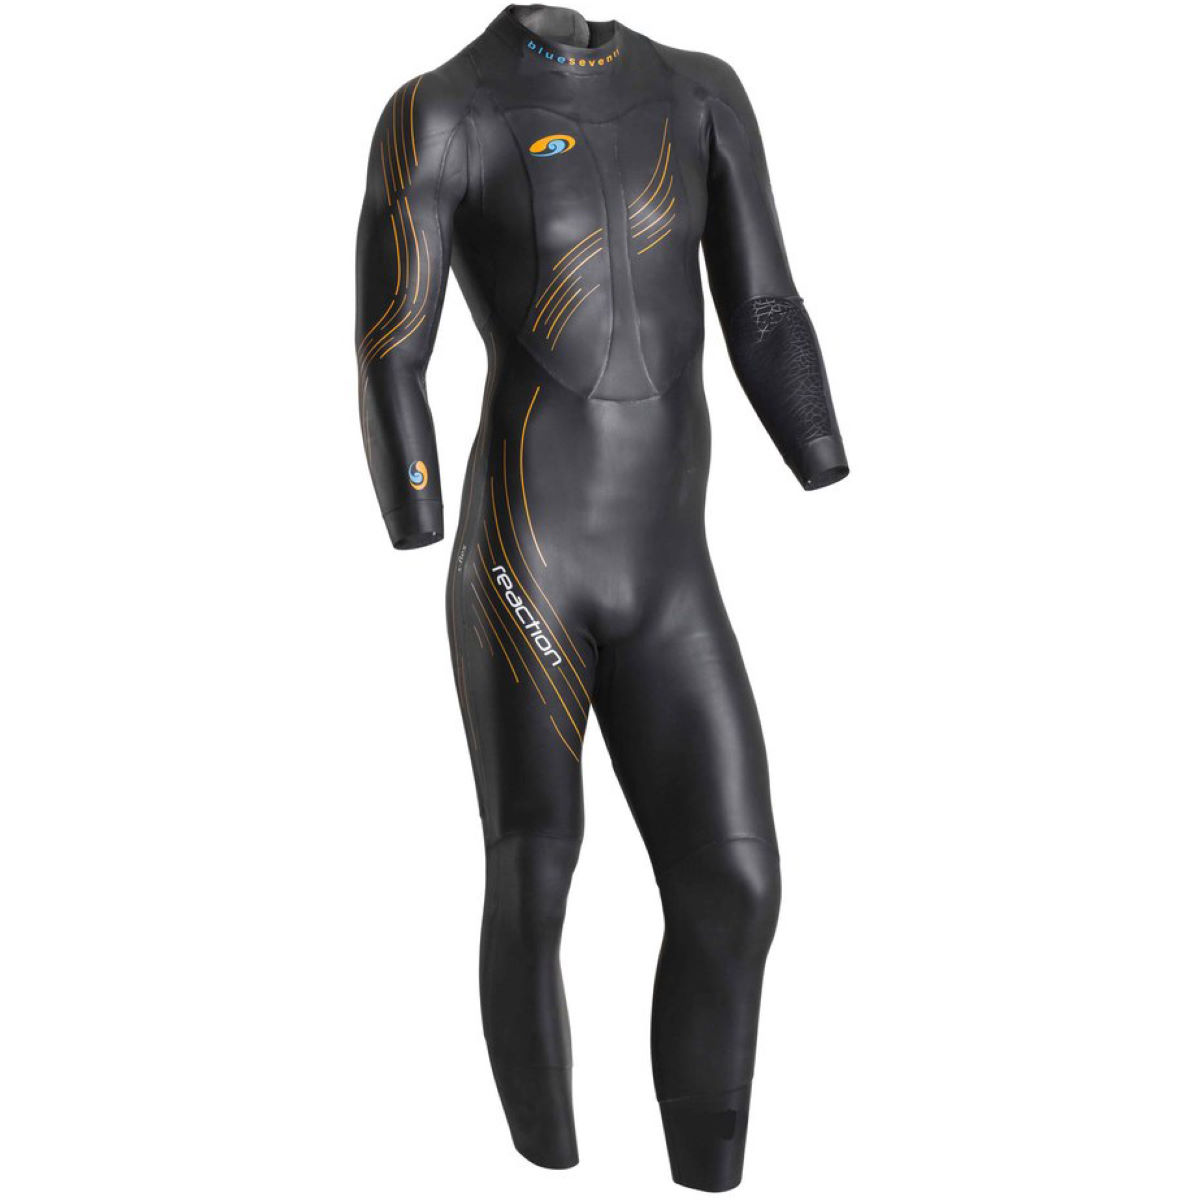 Combinaison blueseventy Reaction - Small Noir